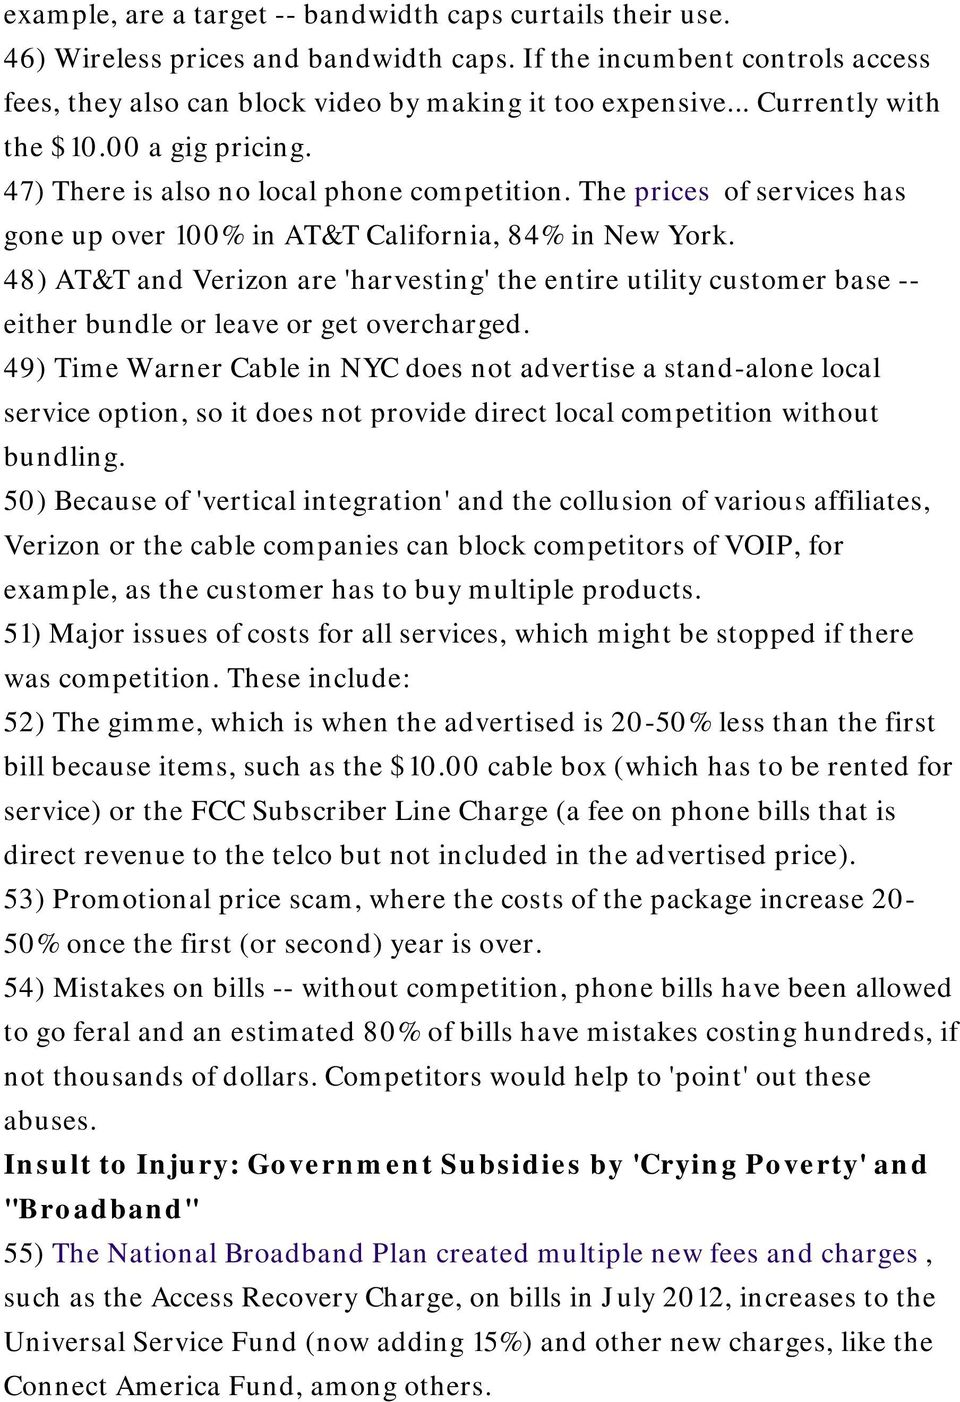 48) AT&T and Verizon are 'harvesting' the entire utility customer base -- either bundle or leave or get overcharged.